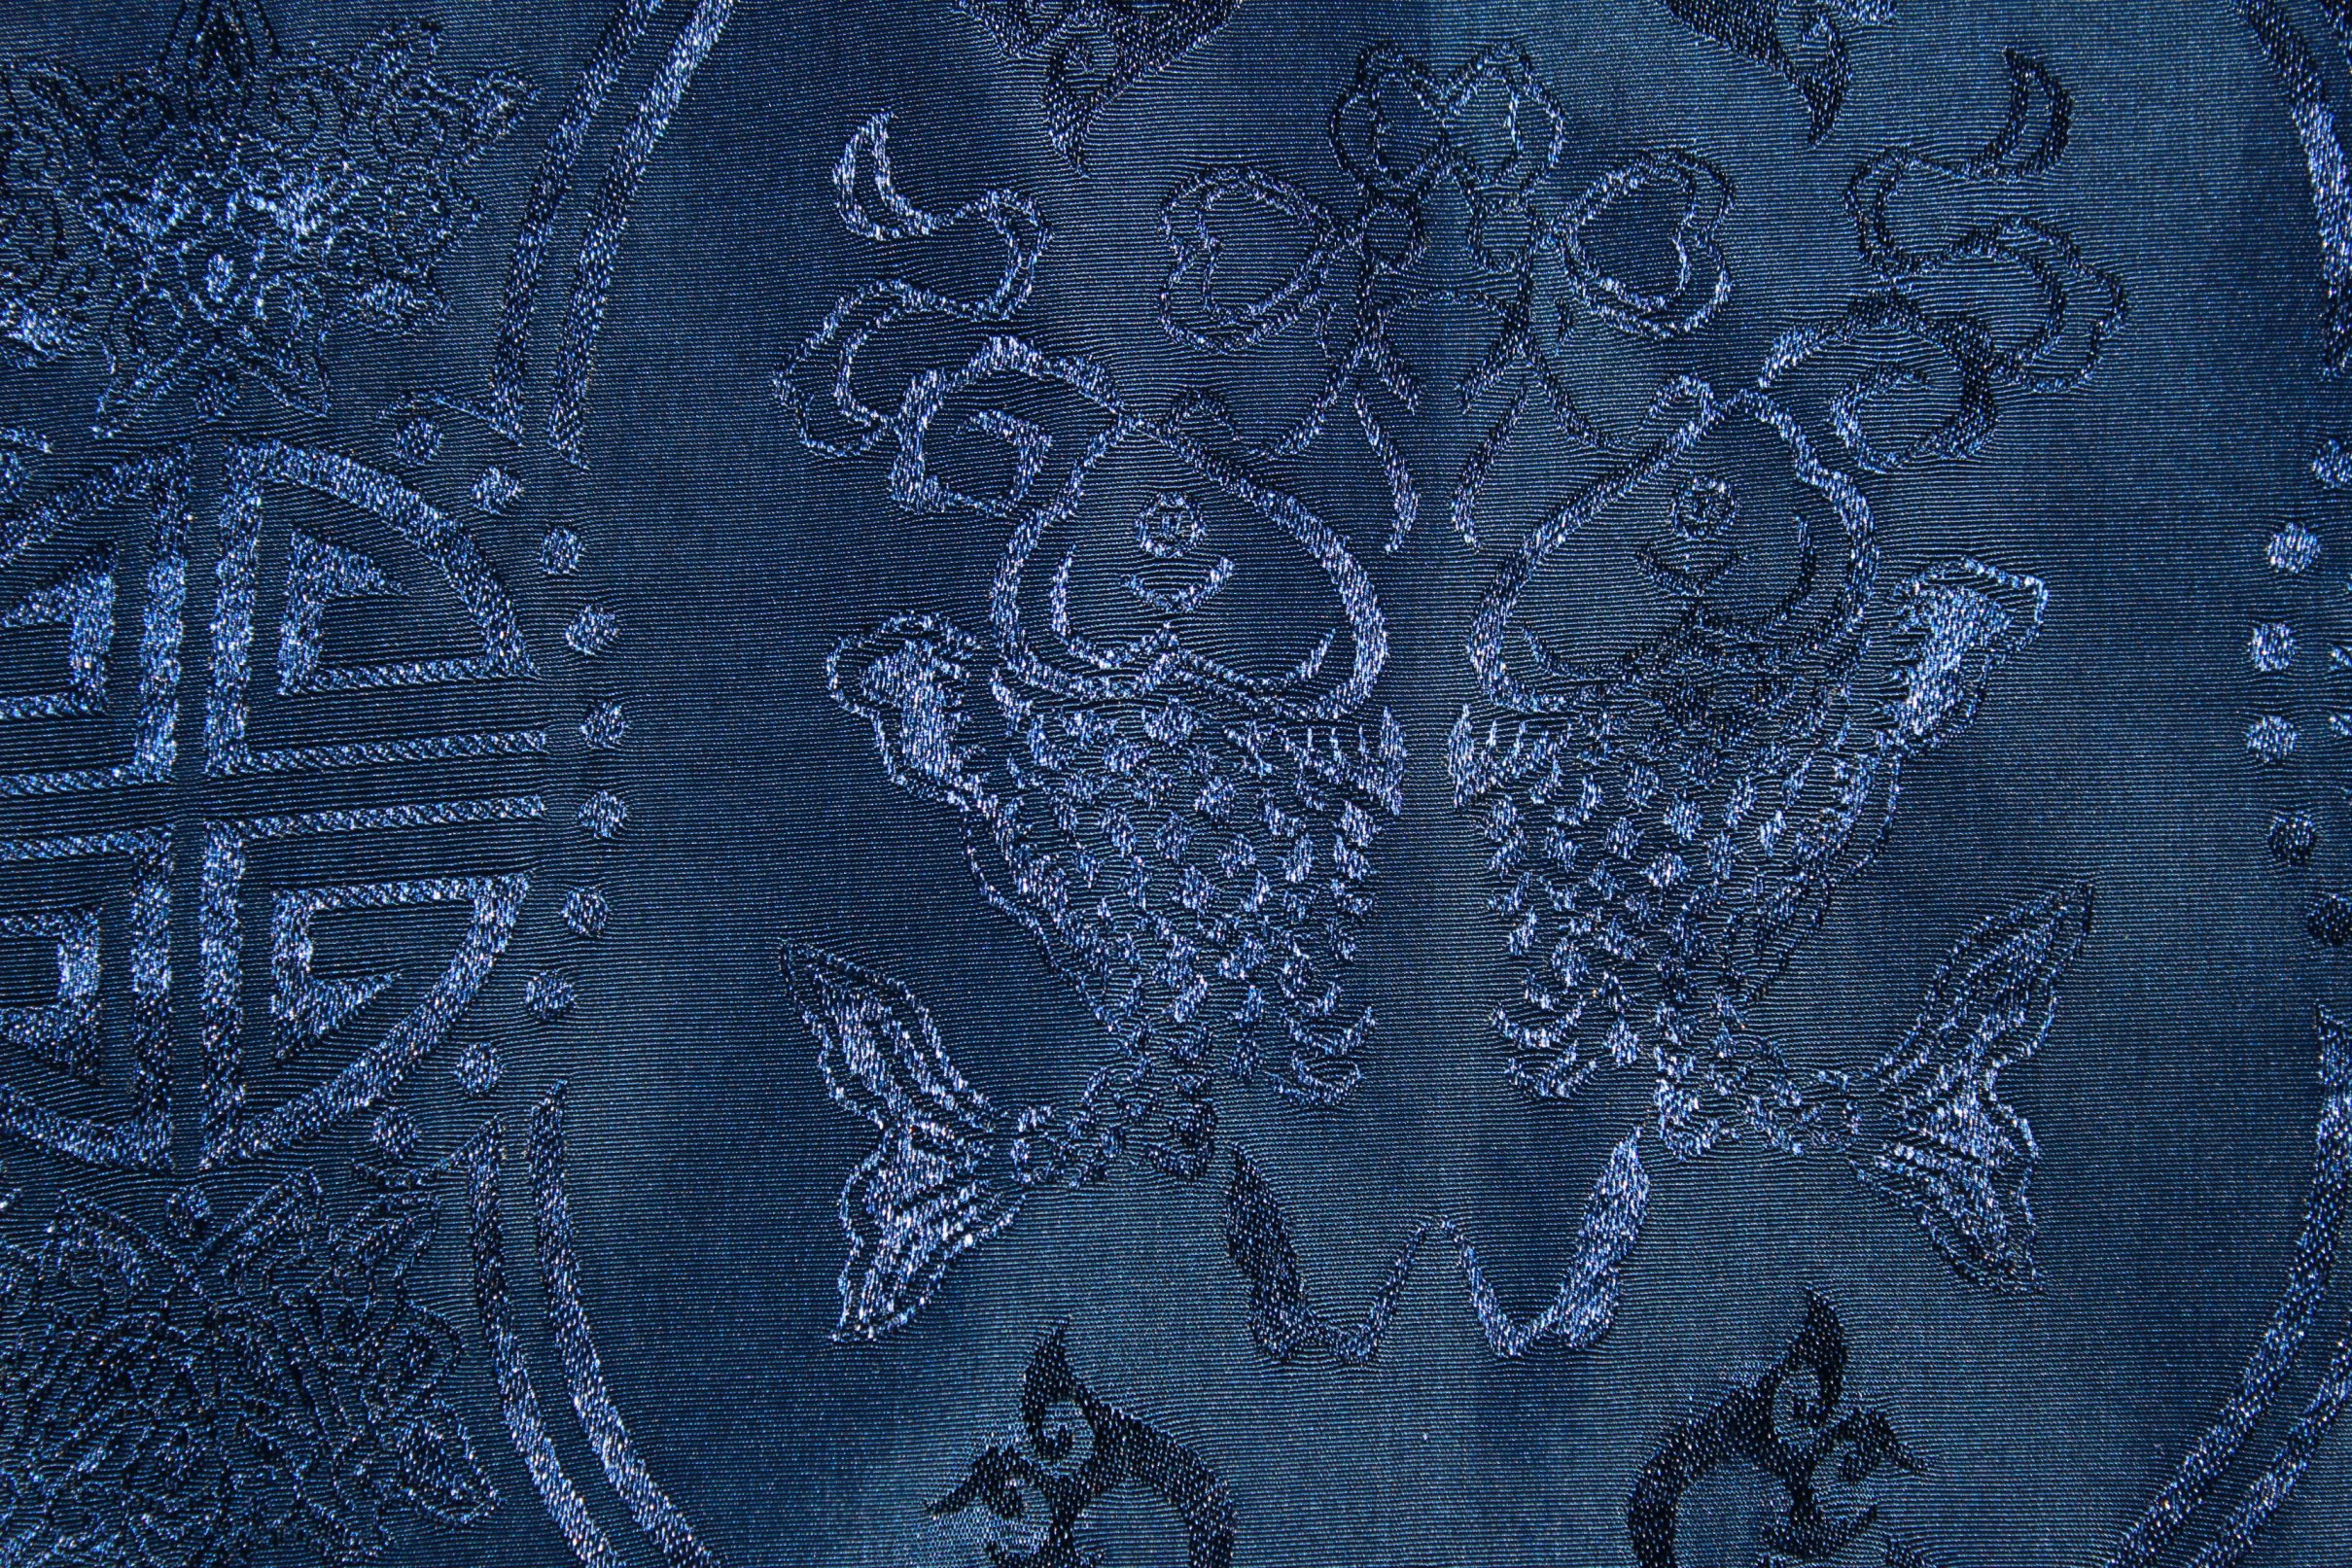 FileGfp blue chinese traditional fabricjpg Wikimedia  : Gfp blue chinese traditional fabric from commons.wikimedia.org size 2419 x 1613 jpeg 1749kB